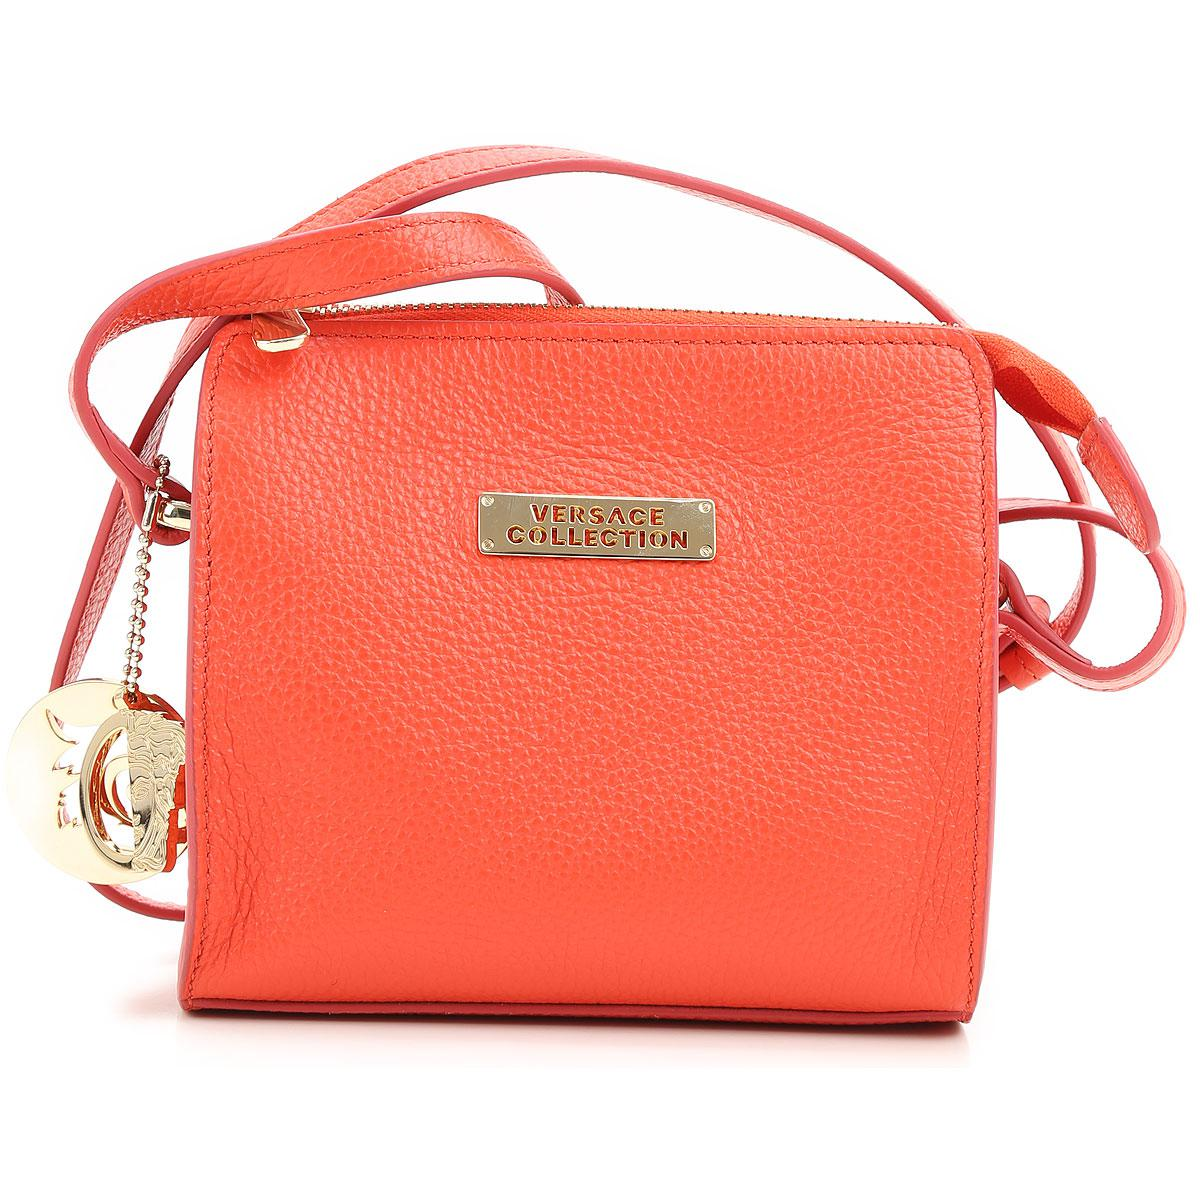 Lyst - Versace Handbags in Red e479ca57e49ee